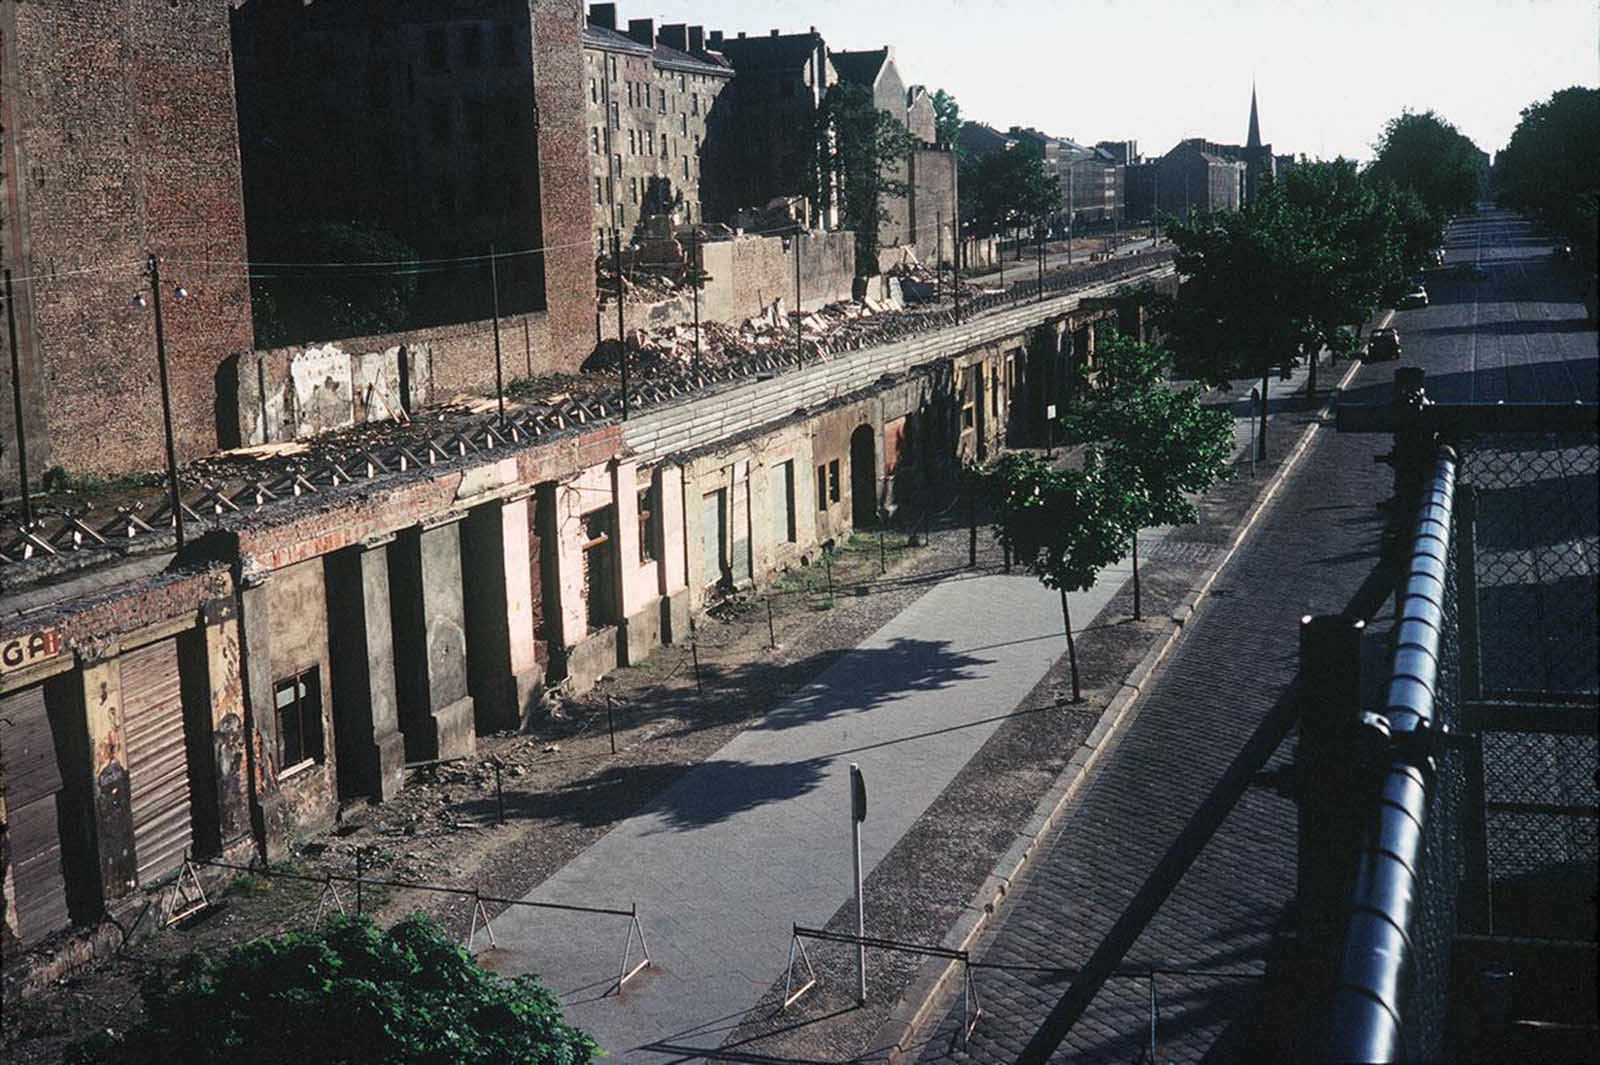 Picture taken in June 1968 of the Berlin Wall and East Berlin (Soviet sector).